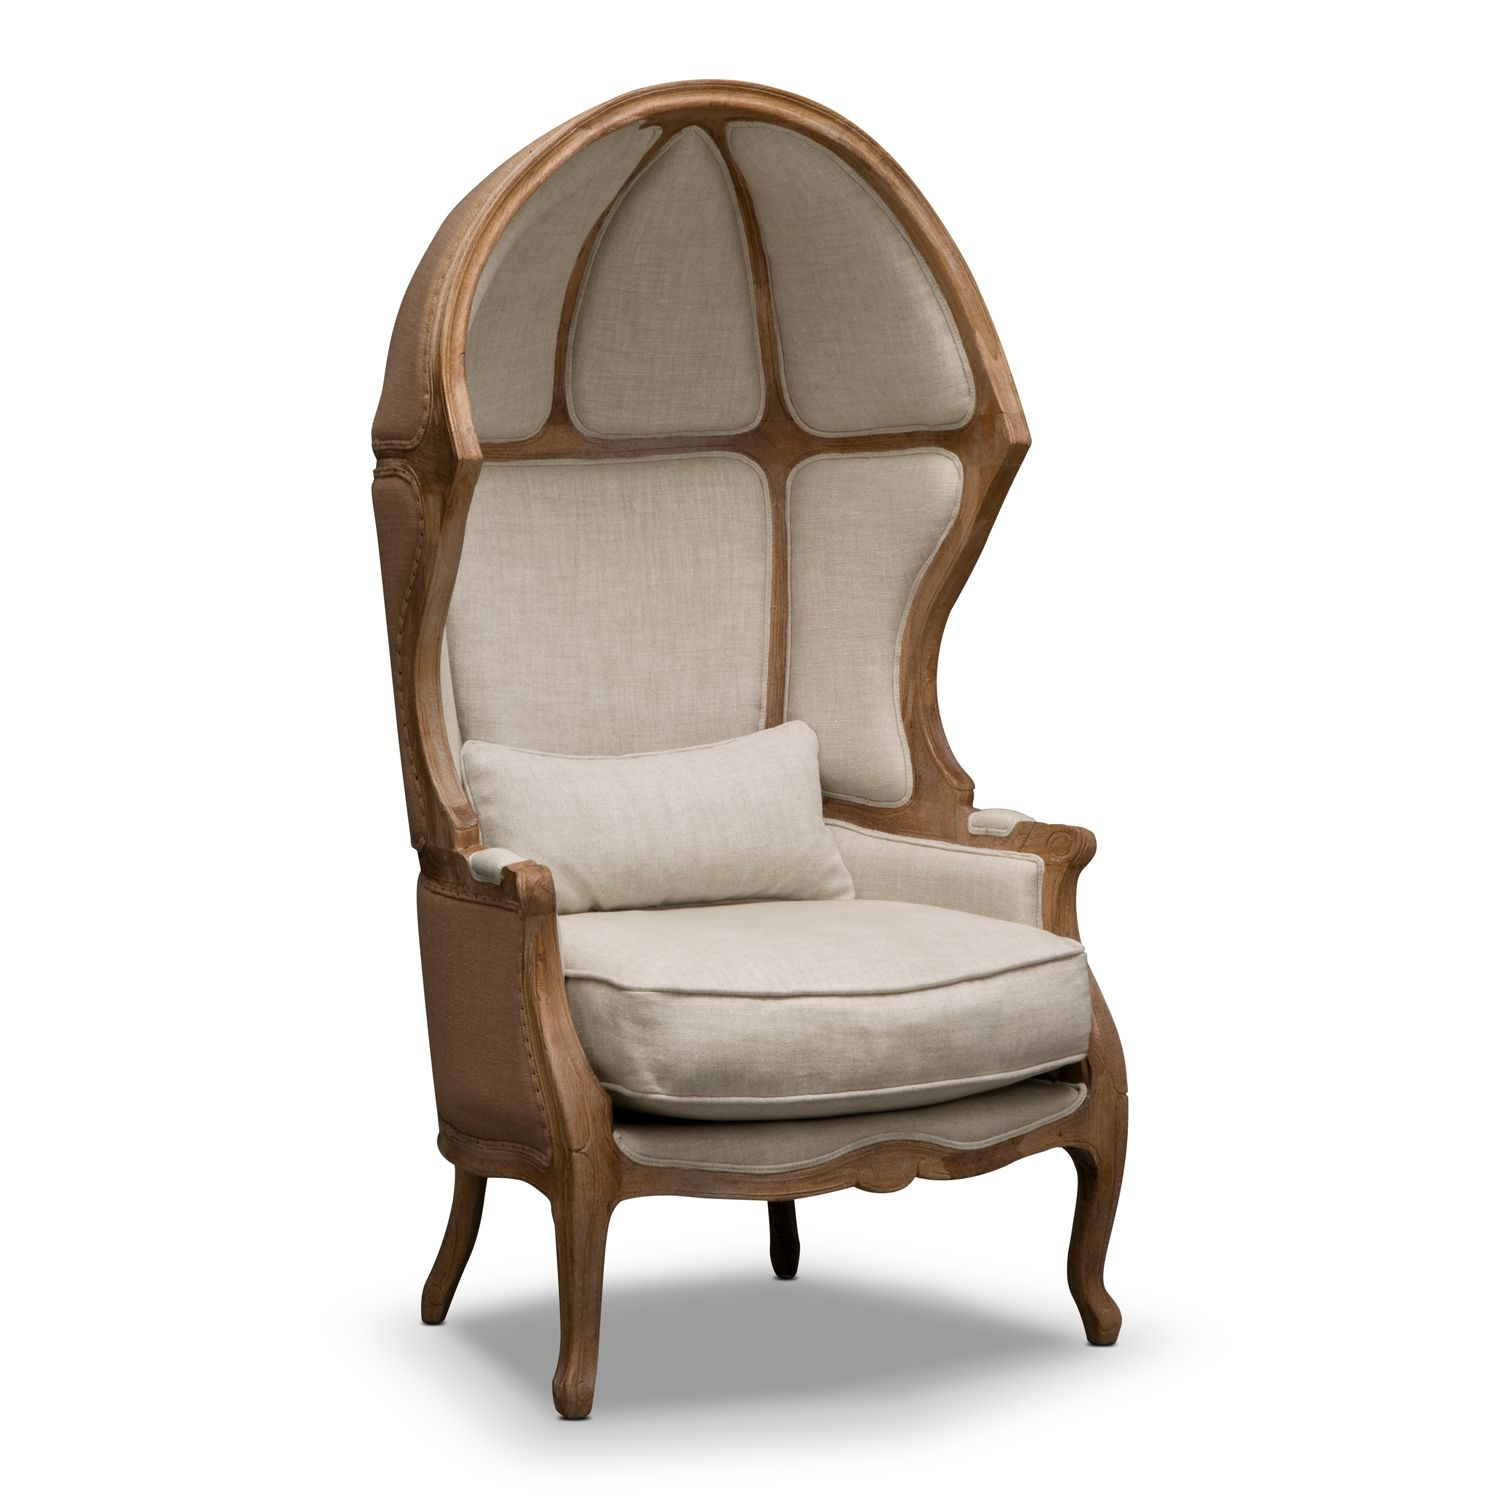 One Of Our More Unique Chairs Has Wood Mixed With Linen And Cotton For A  More Dynamic Furniture Piece Living Room Furniture   Madeline Dome Accent  Chair